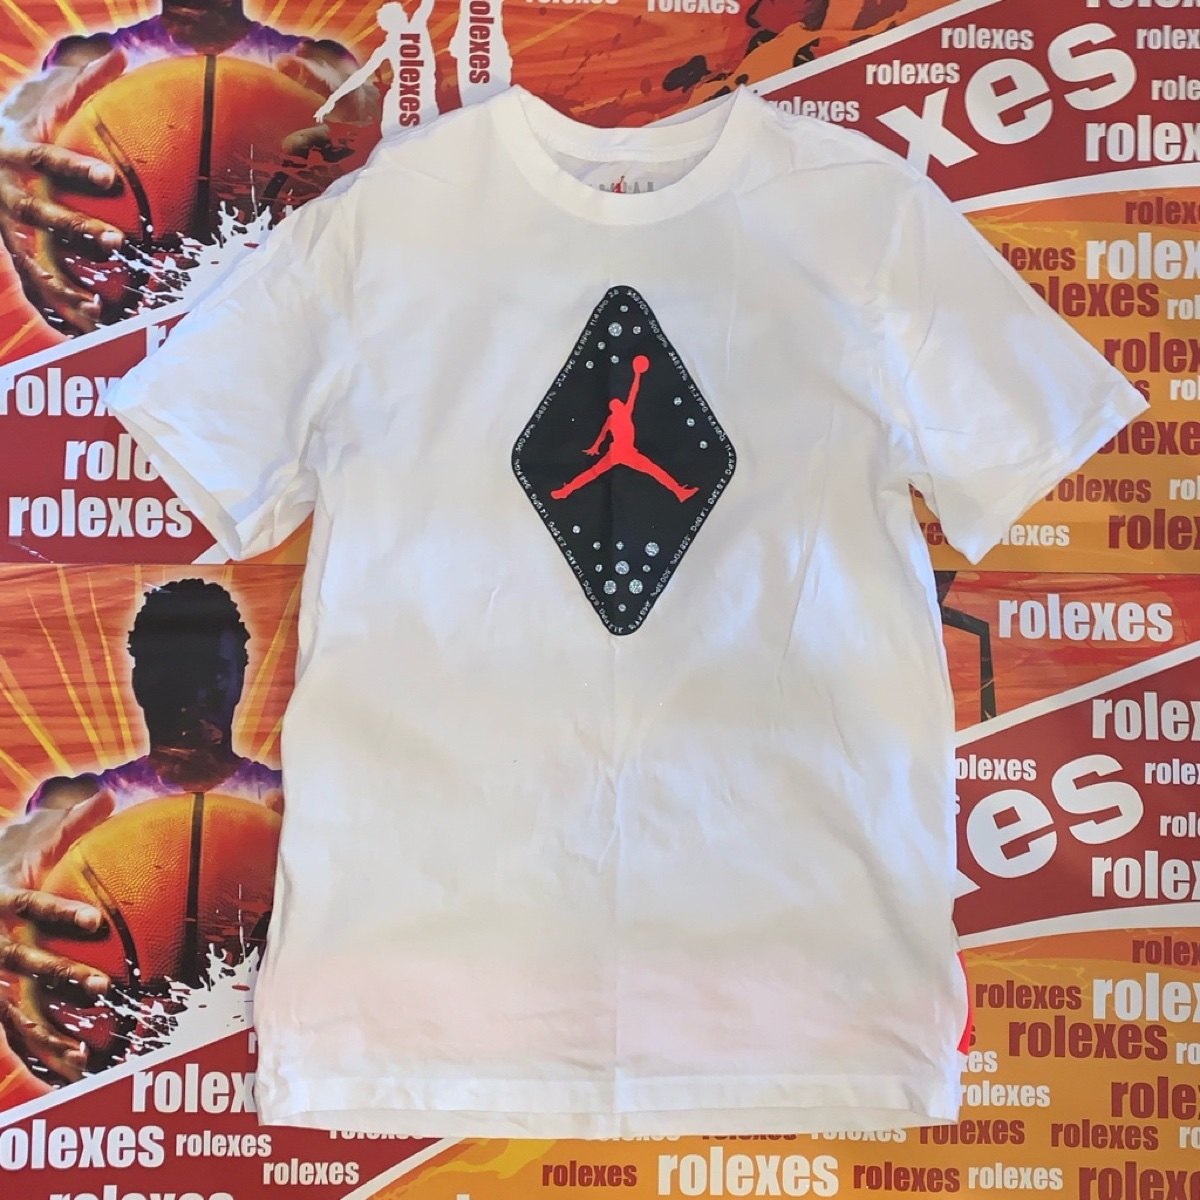 Nike Air Jordan 6 infrared Tee White (2019)